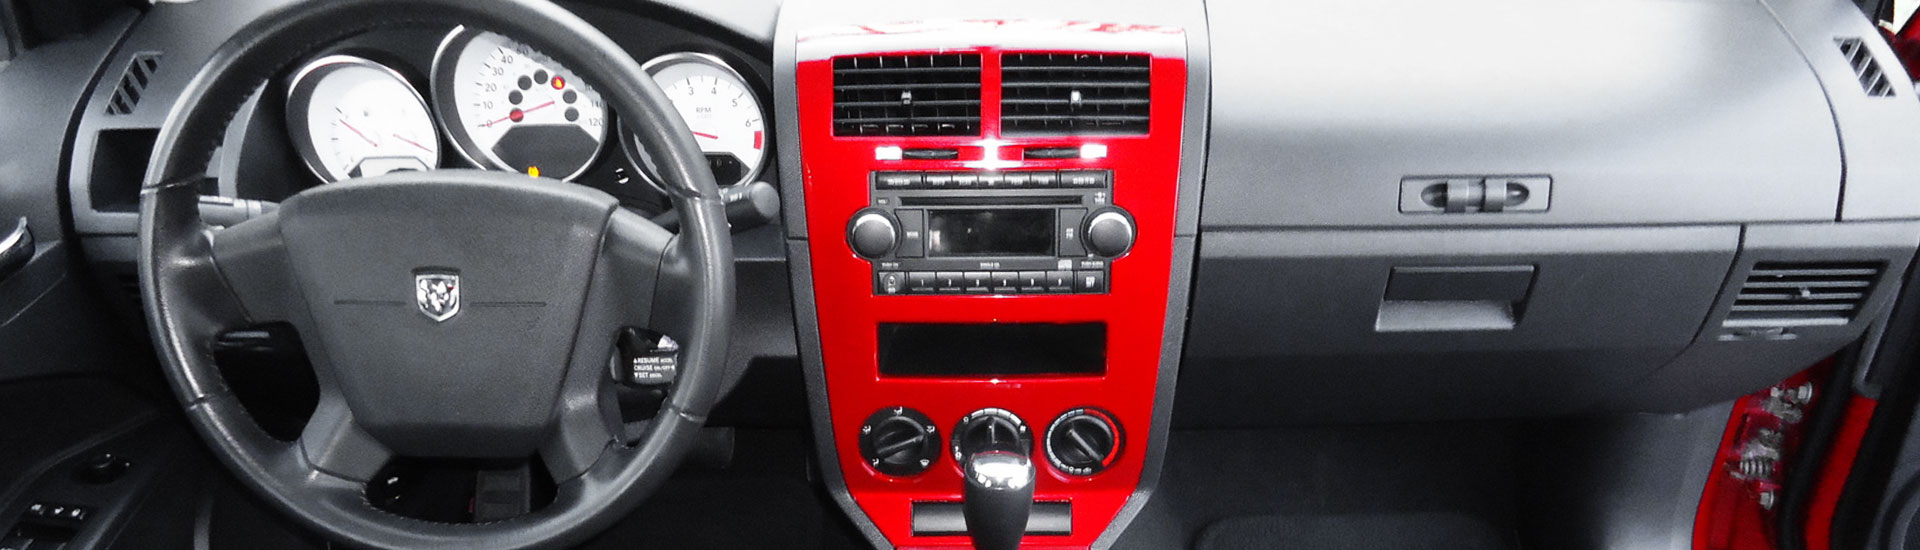 2006 Dodge Ram Custom Dash Kits